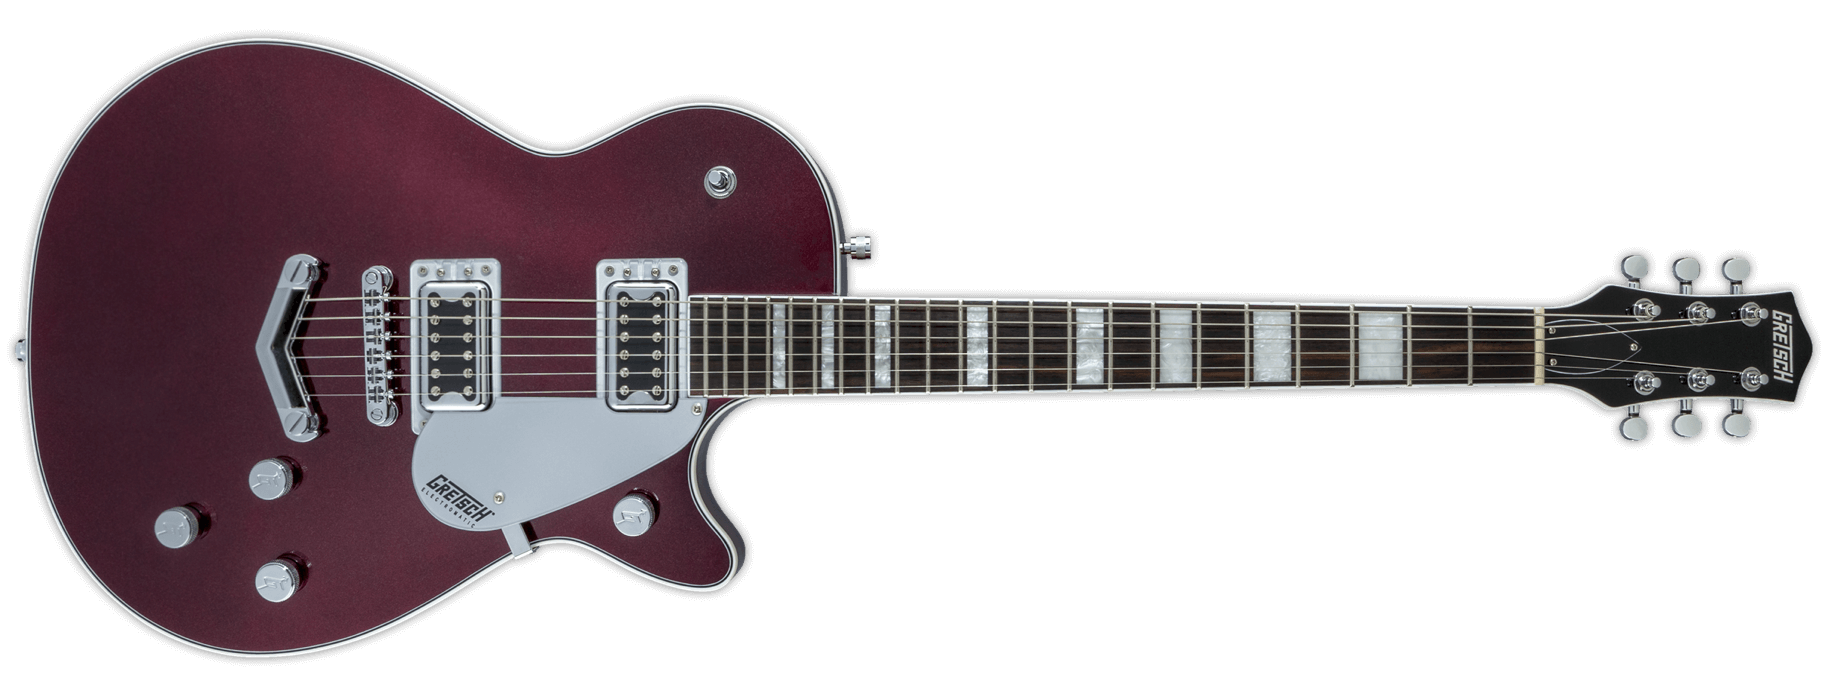 Gretsch Electromatic G5220 Jet BT Dark Cherry Metallic